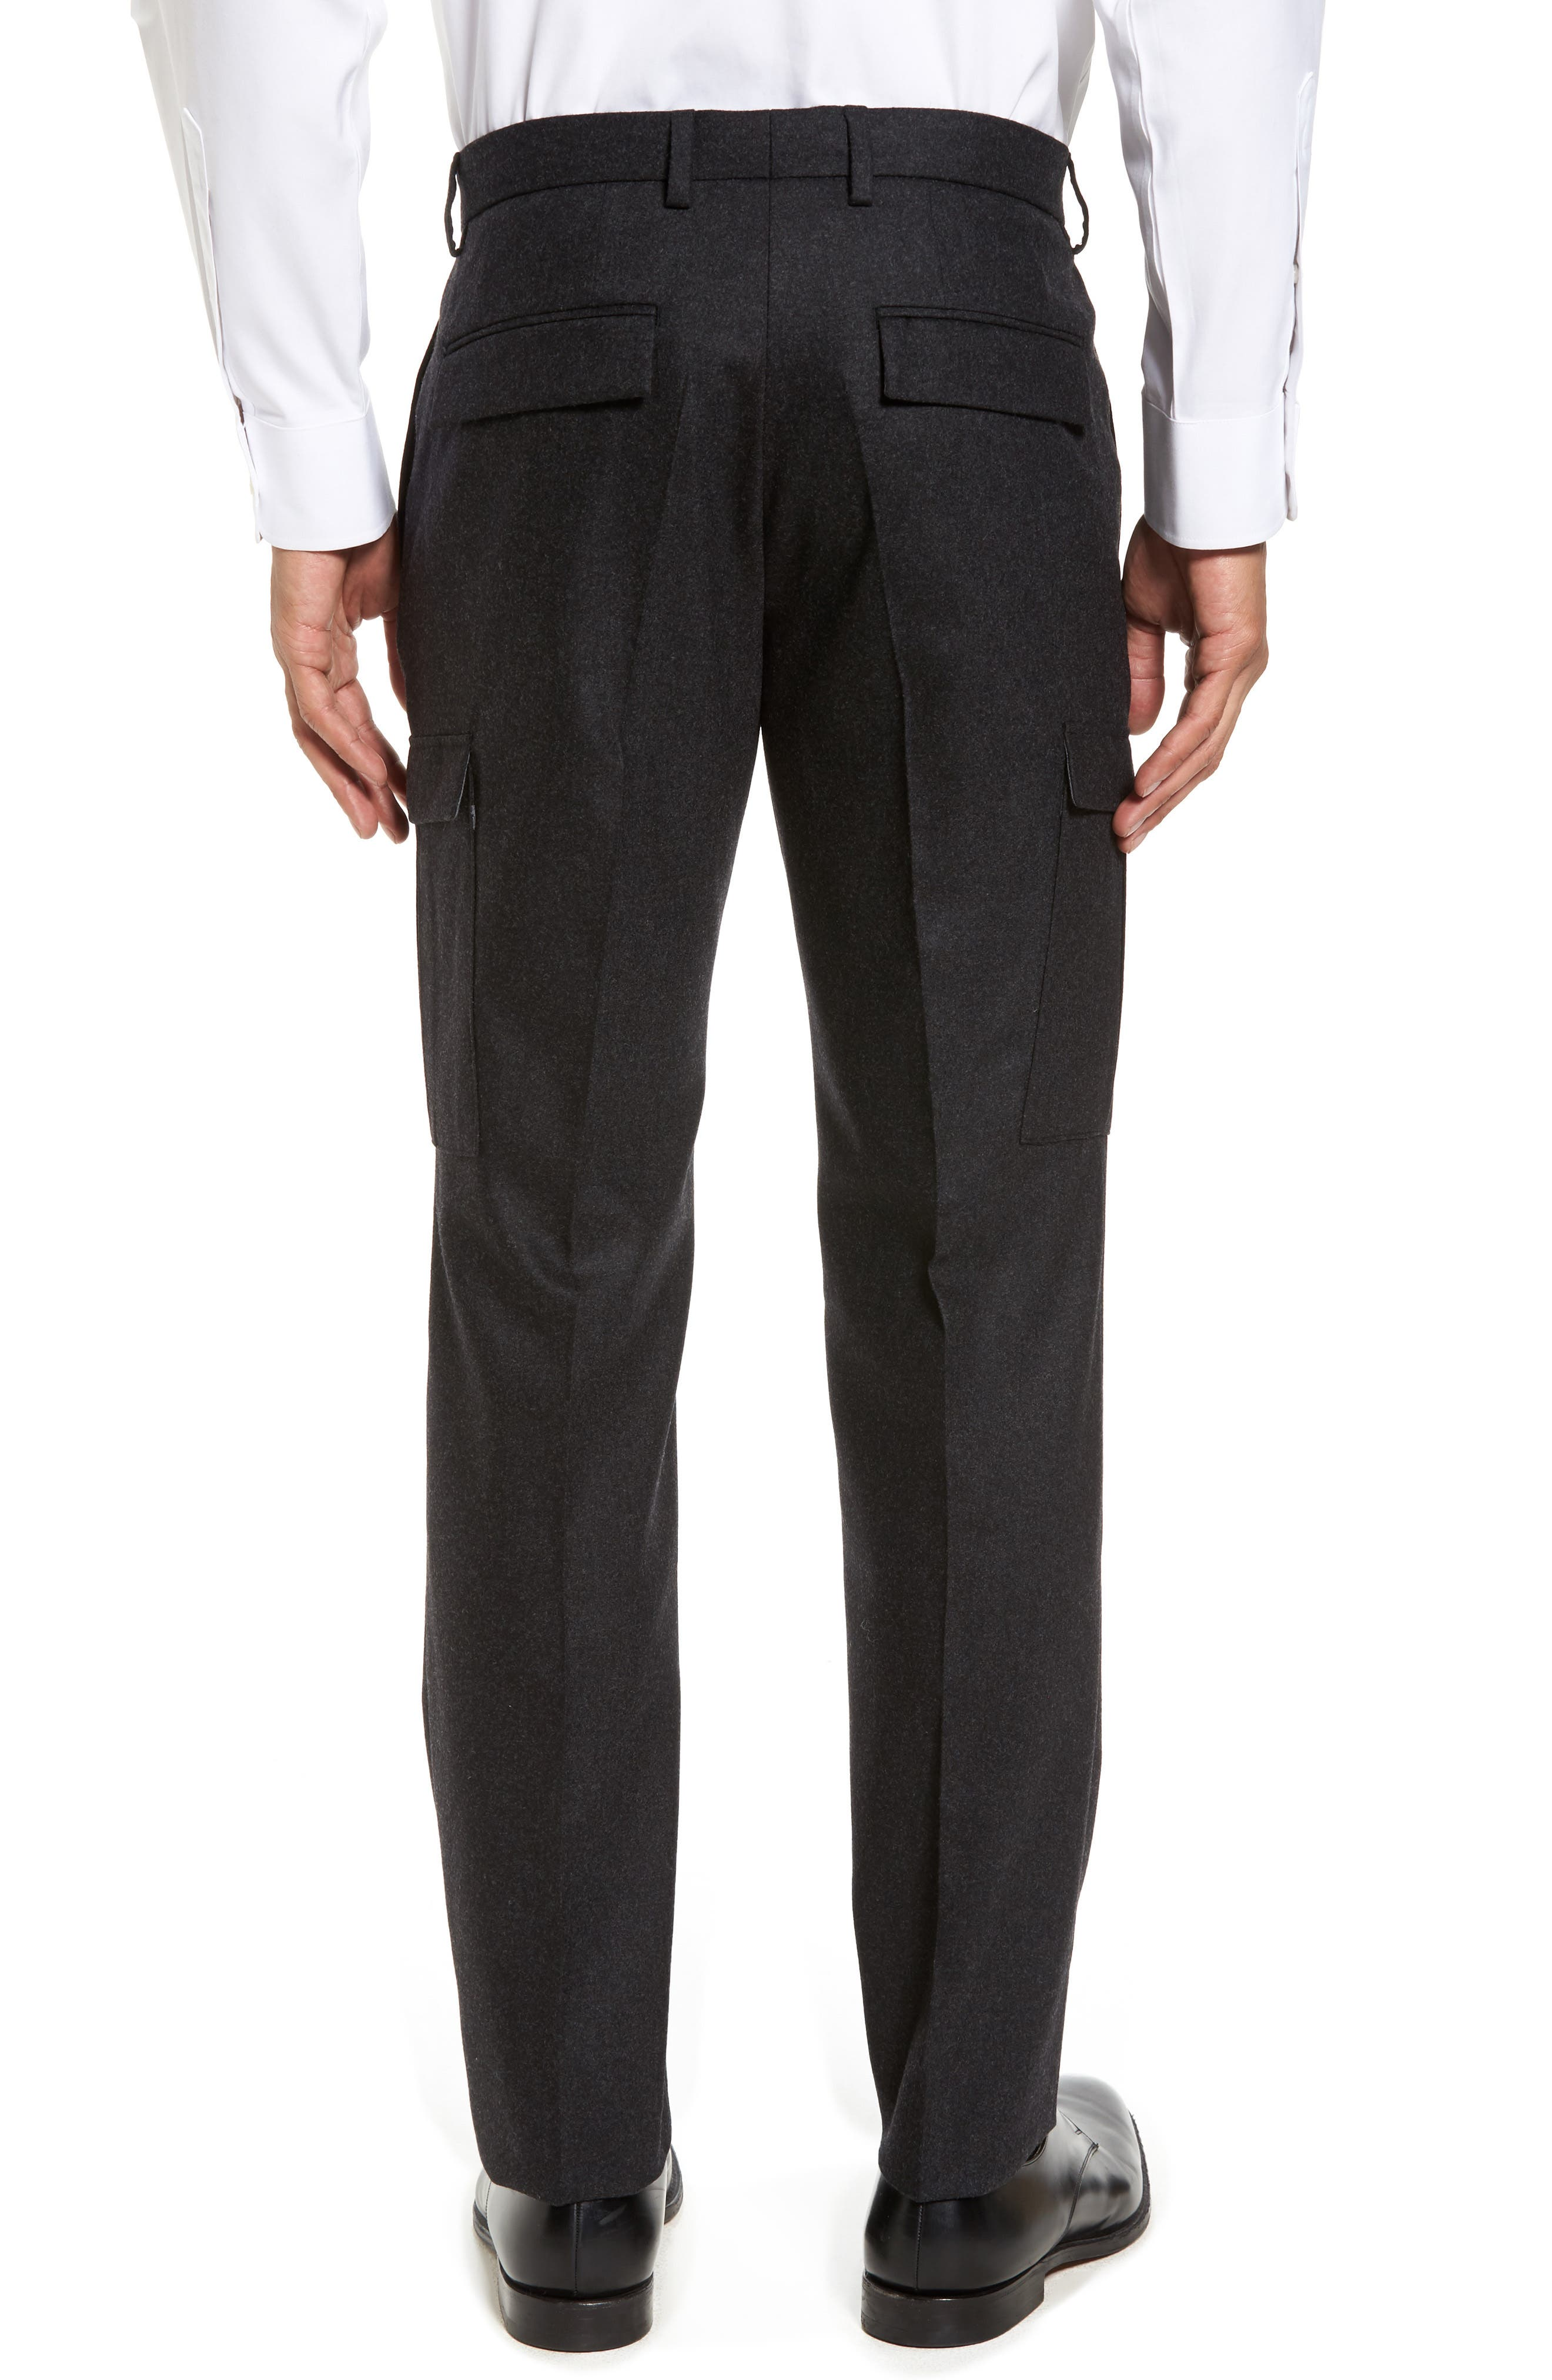 Balour Flat Front Stretch Solid Wool & Cashmere Cargo Trousers,                             Alternate thumbnail 3, color,